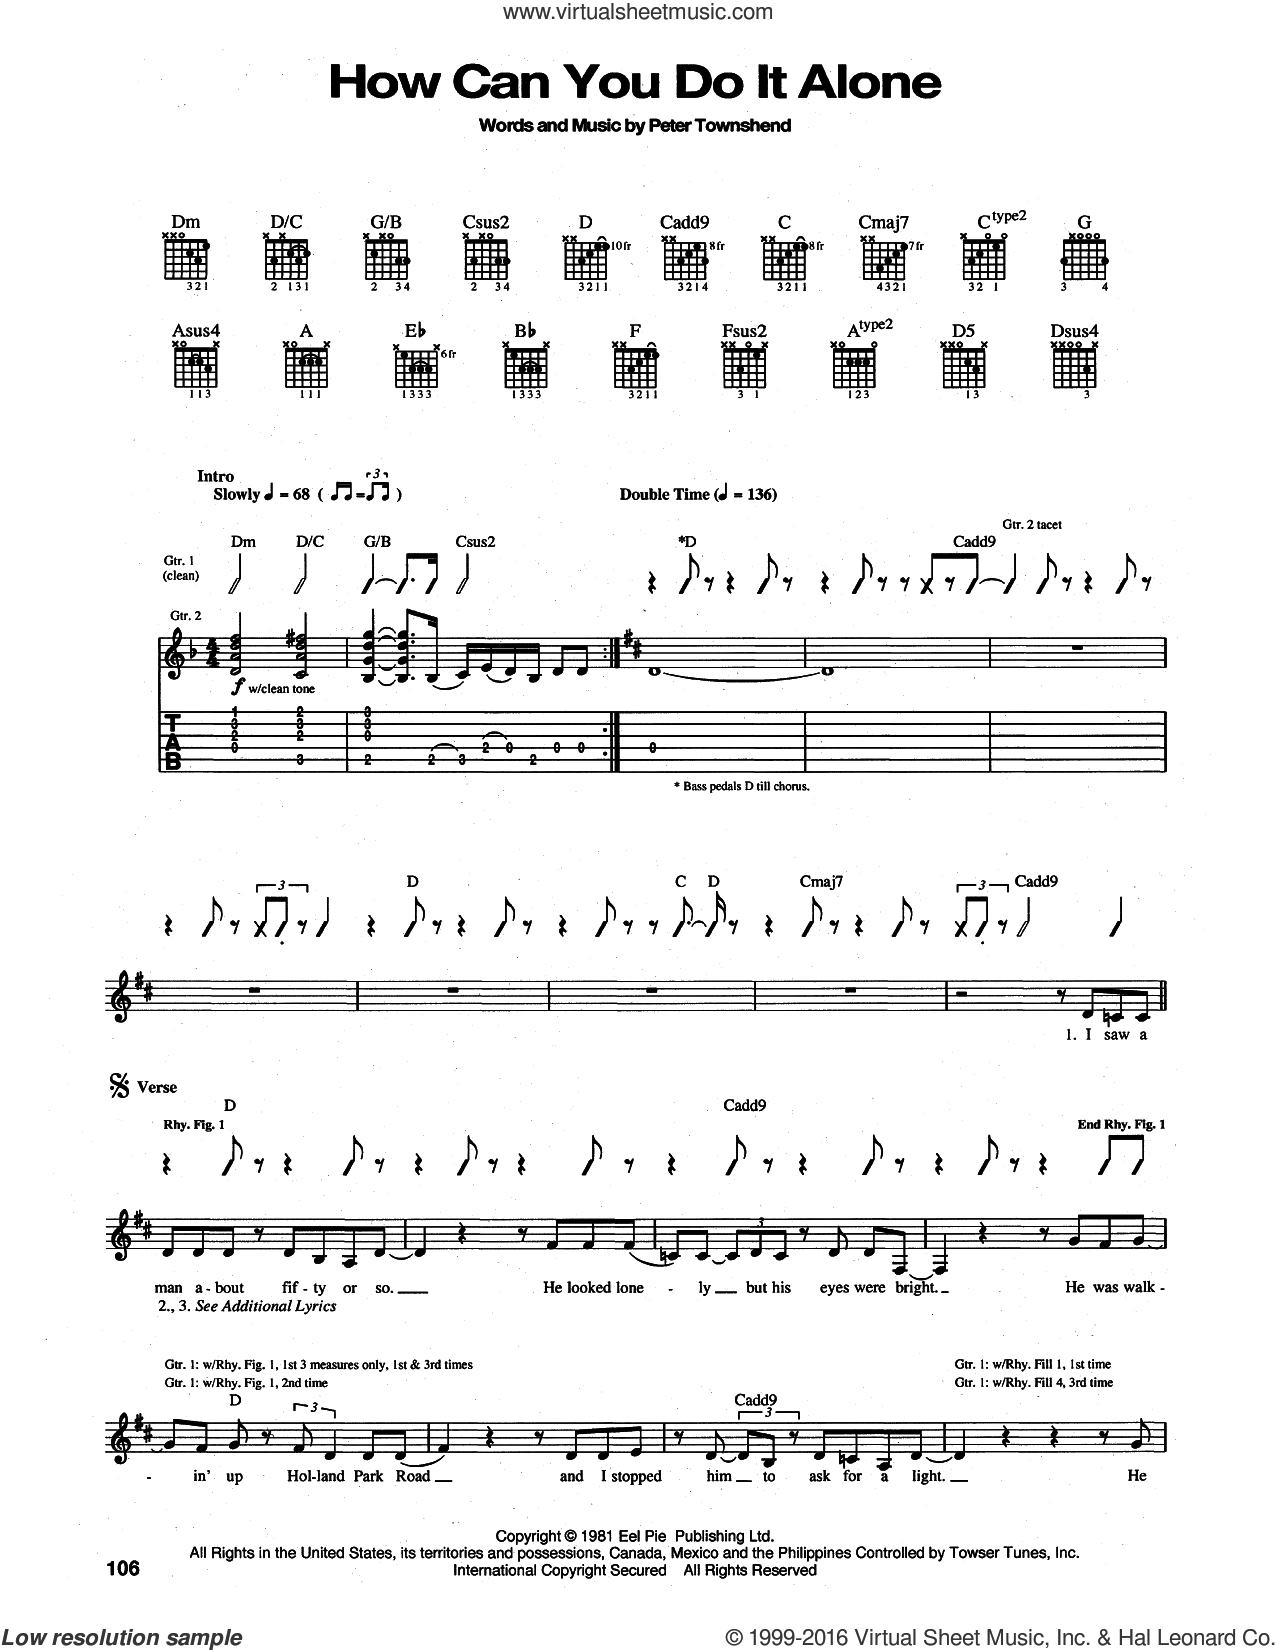 How Can You Do It Alone sheet music for guitar (tablature) by The Who and Pete Townshend, intermediate skill level